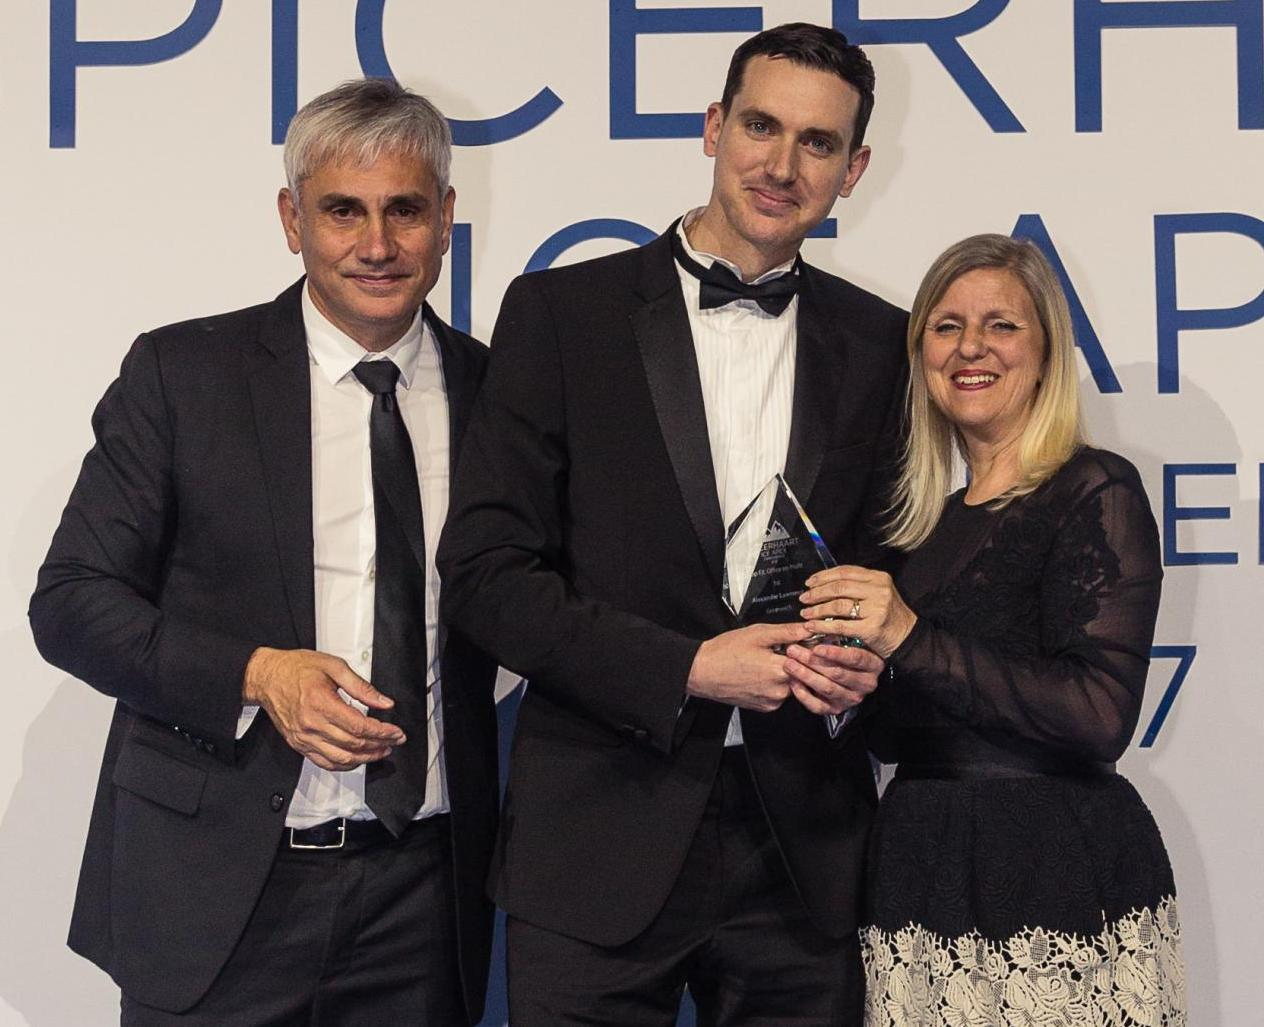 Greenwich estate agent Alexander Lawrence of Felicity J Lord wins Spicerhaart company award for branch's performance